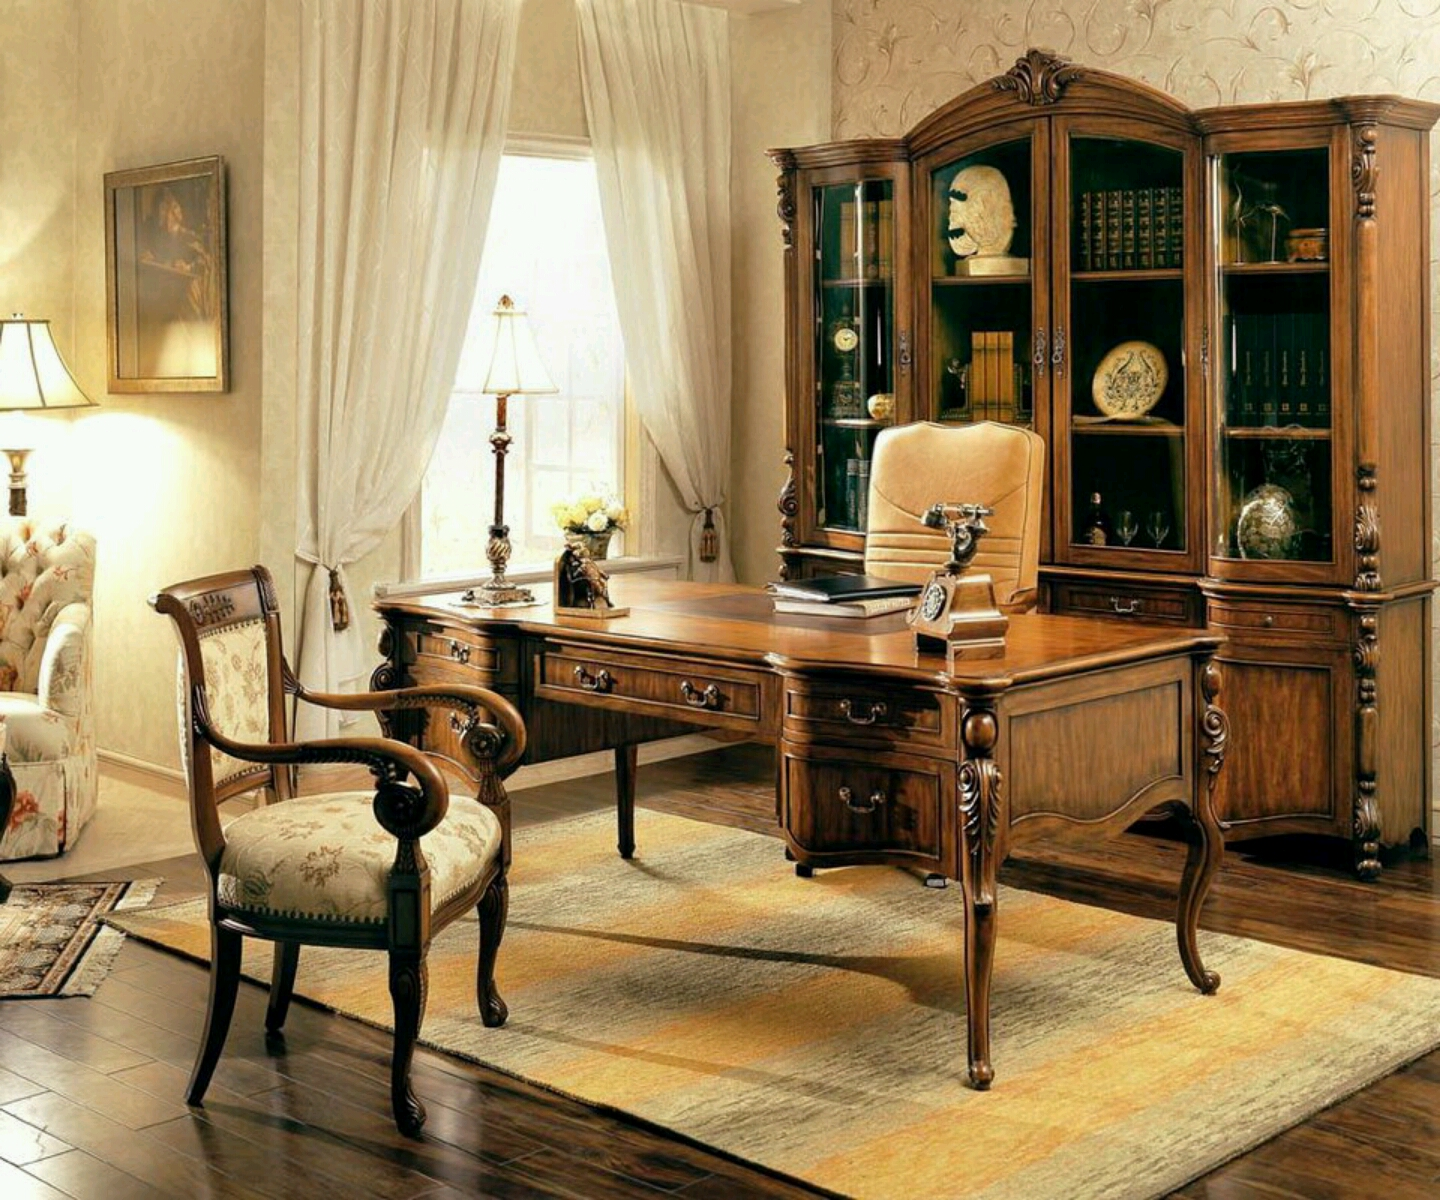 Modern study room furnitures designs ideas. ~ Furniture Gallery